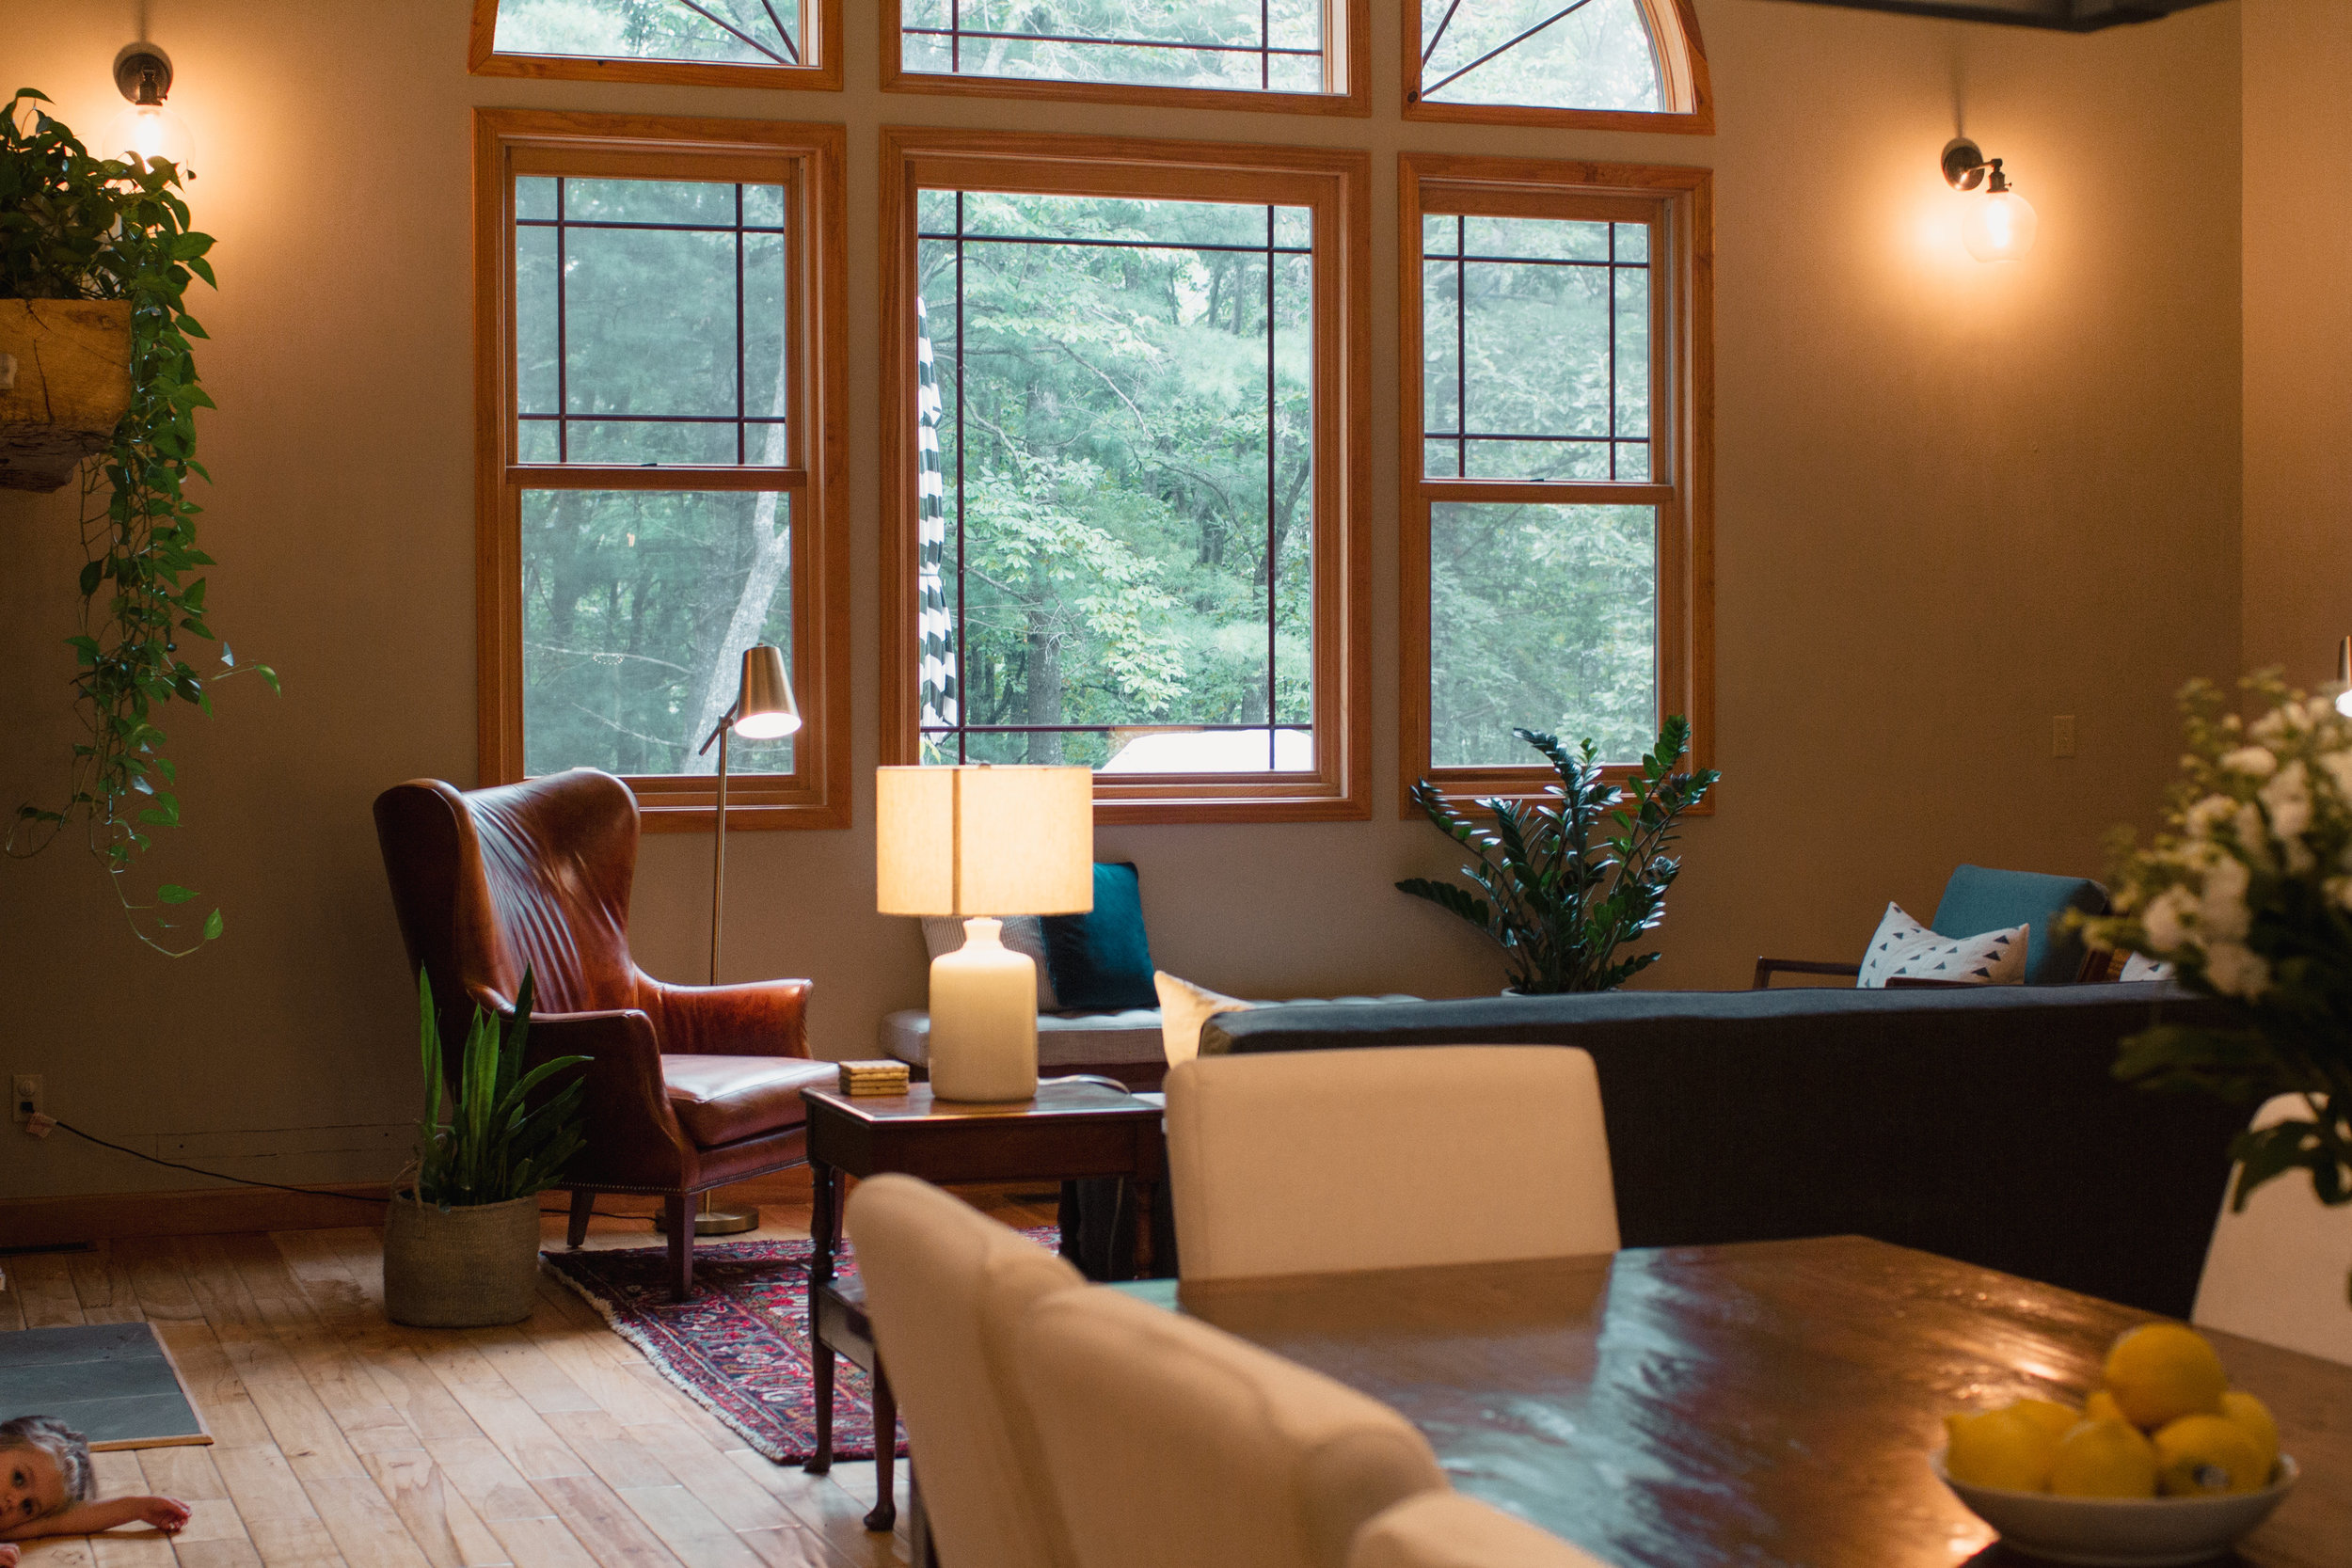 Mountain Mix - Craftsman home with a mix of midcentury, contemporary and rustic styles.